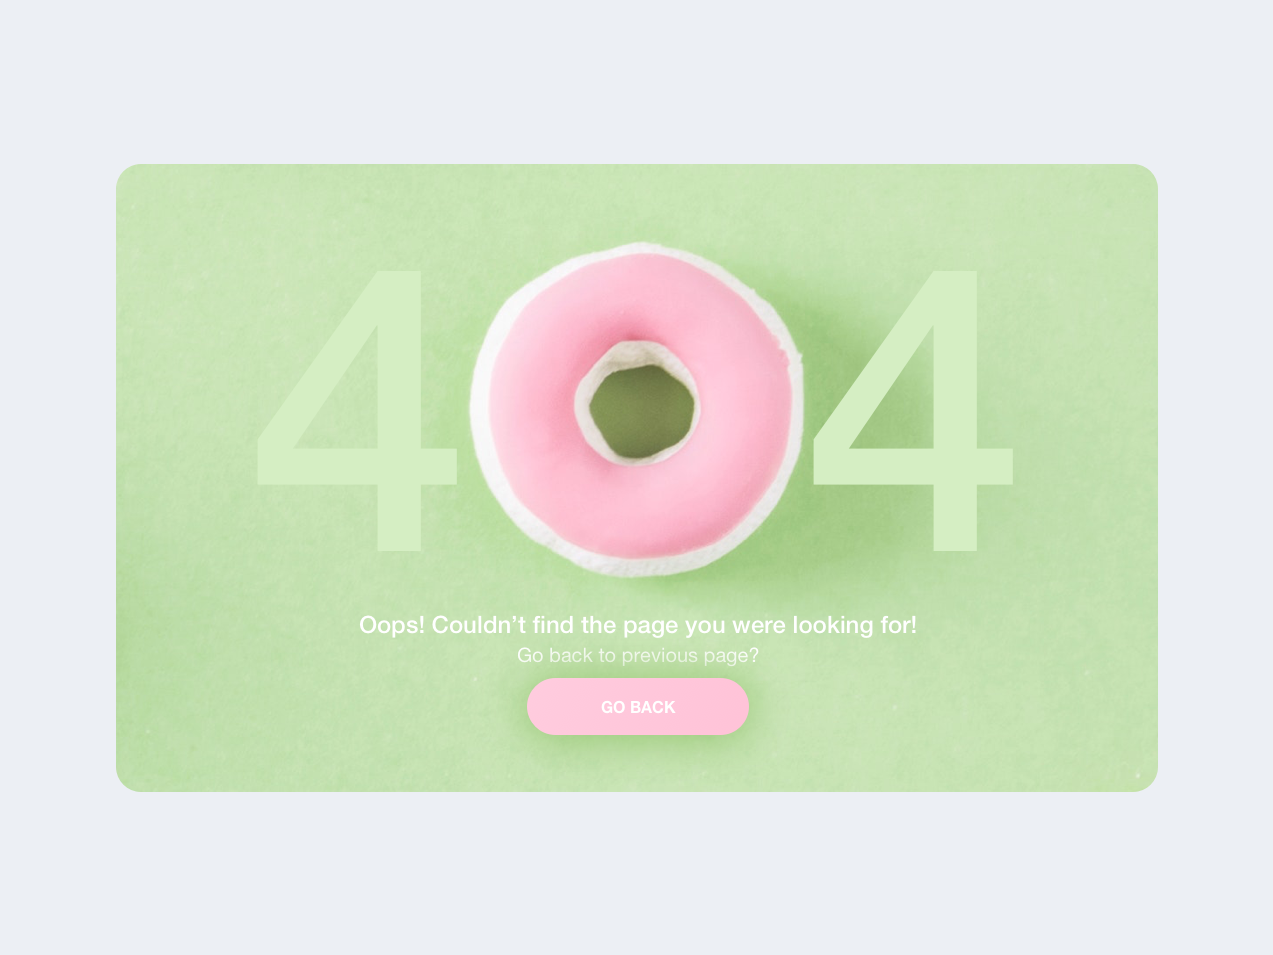 Page not found daily 100 challenge daily 100 green pink error 404 404 page